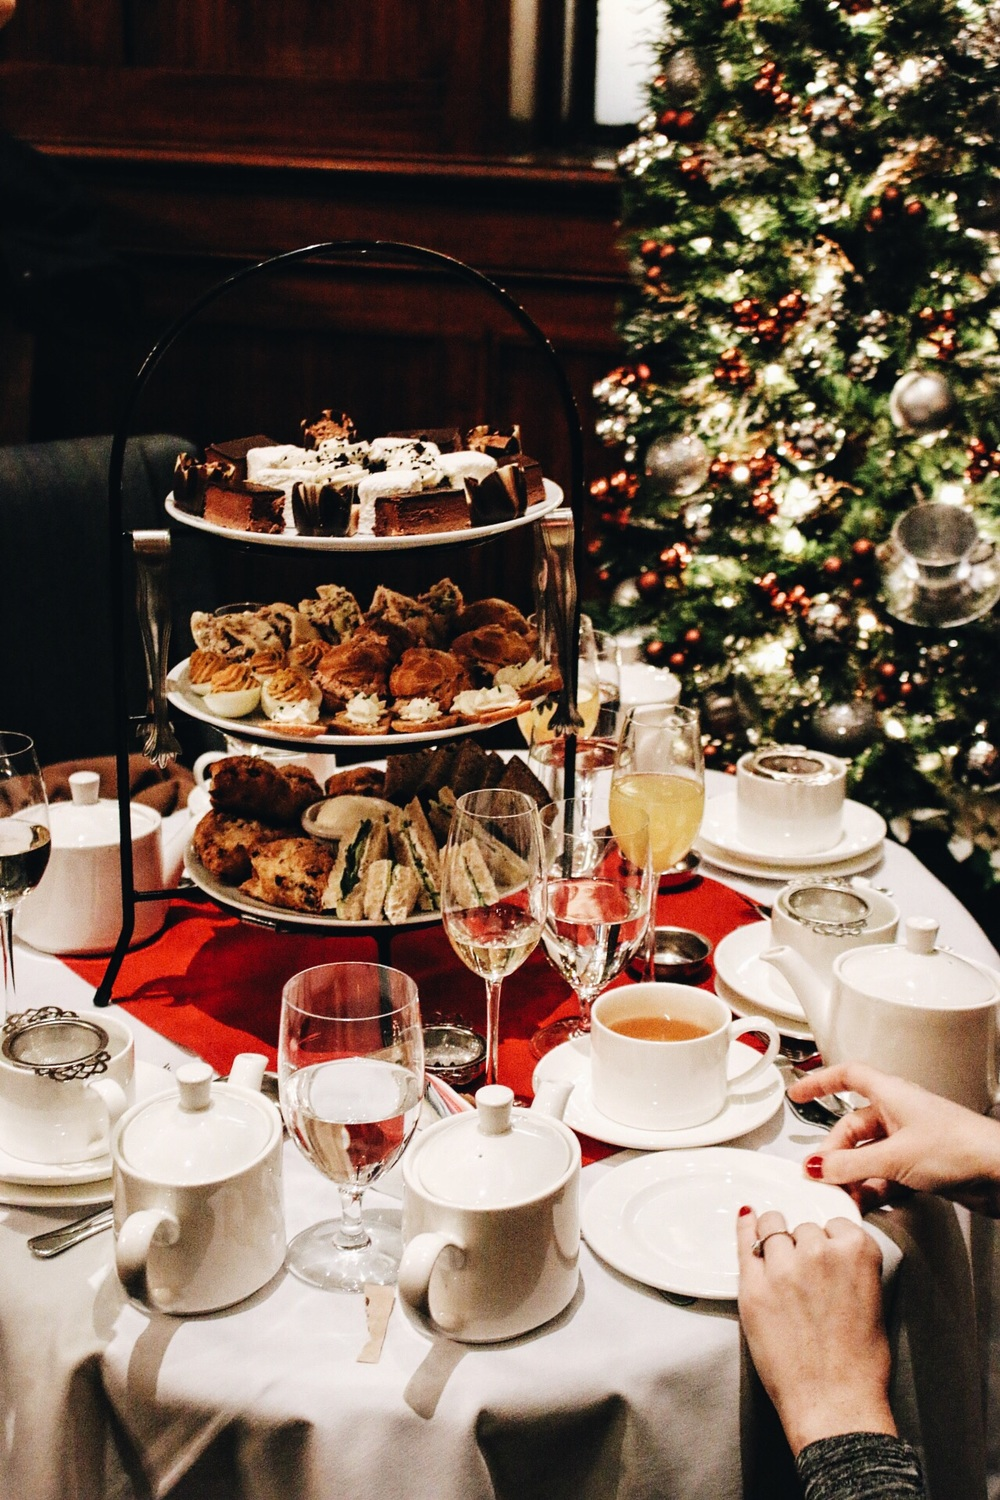 Holiday Tea at The Heathman | Christmas tree, teas, and all.